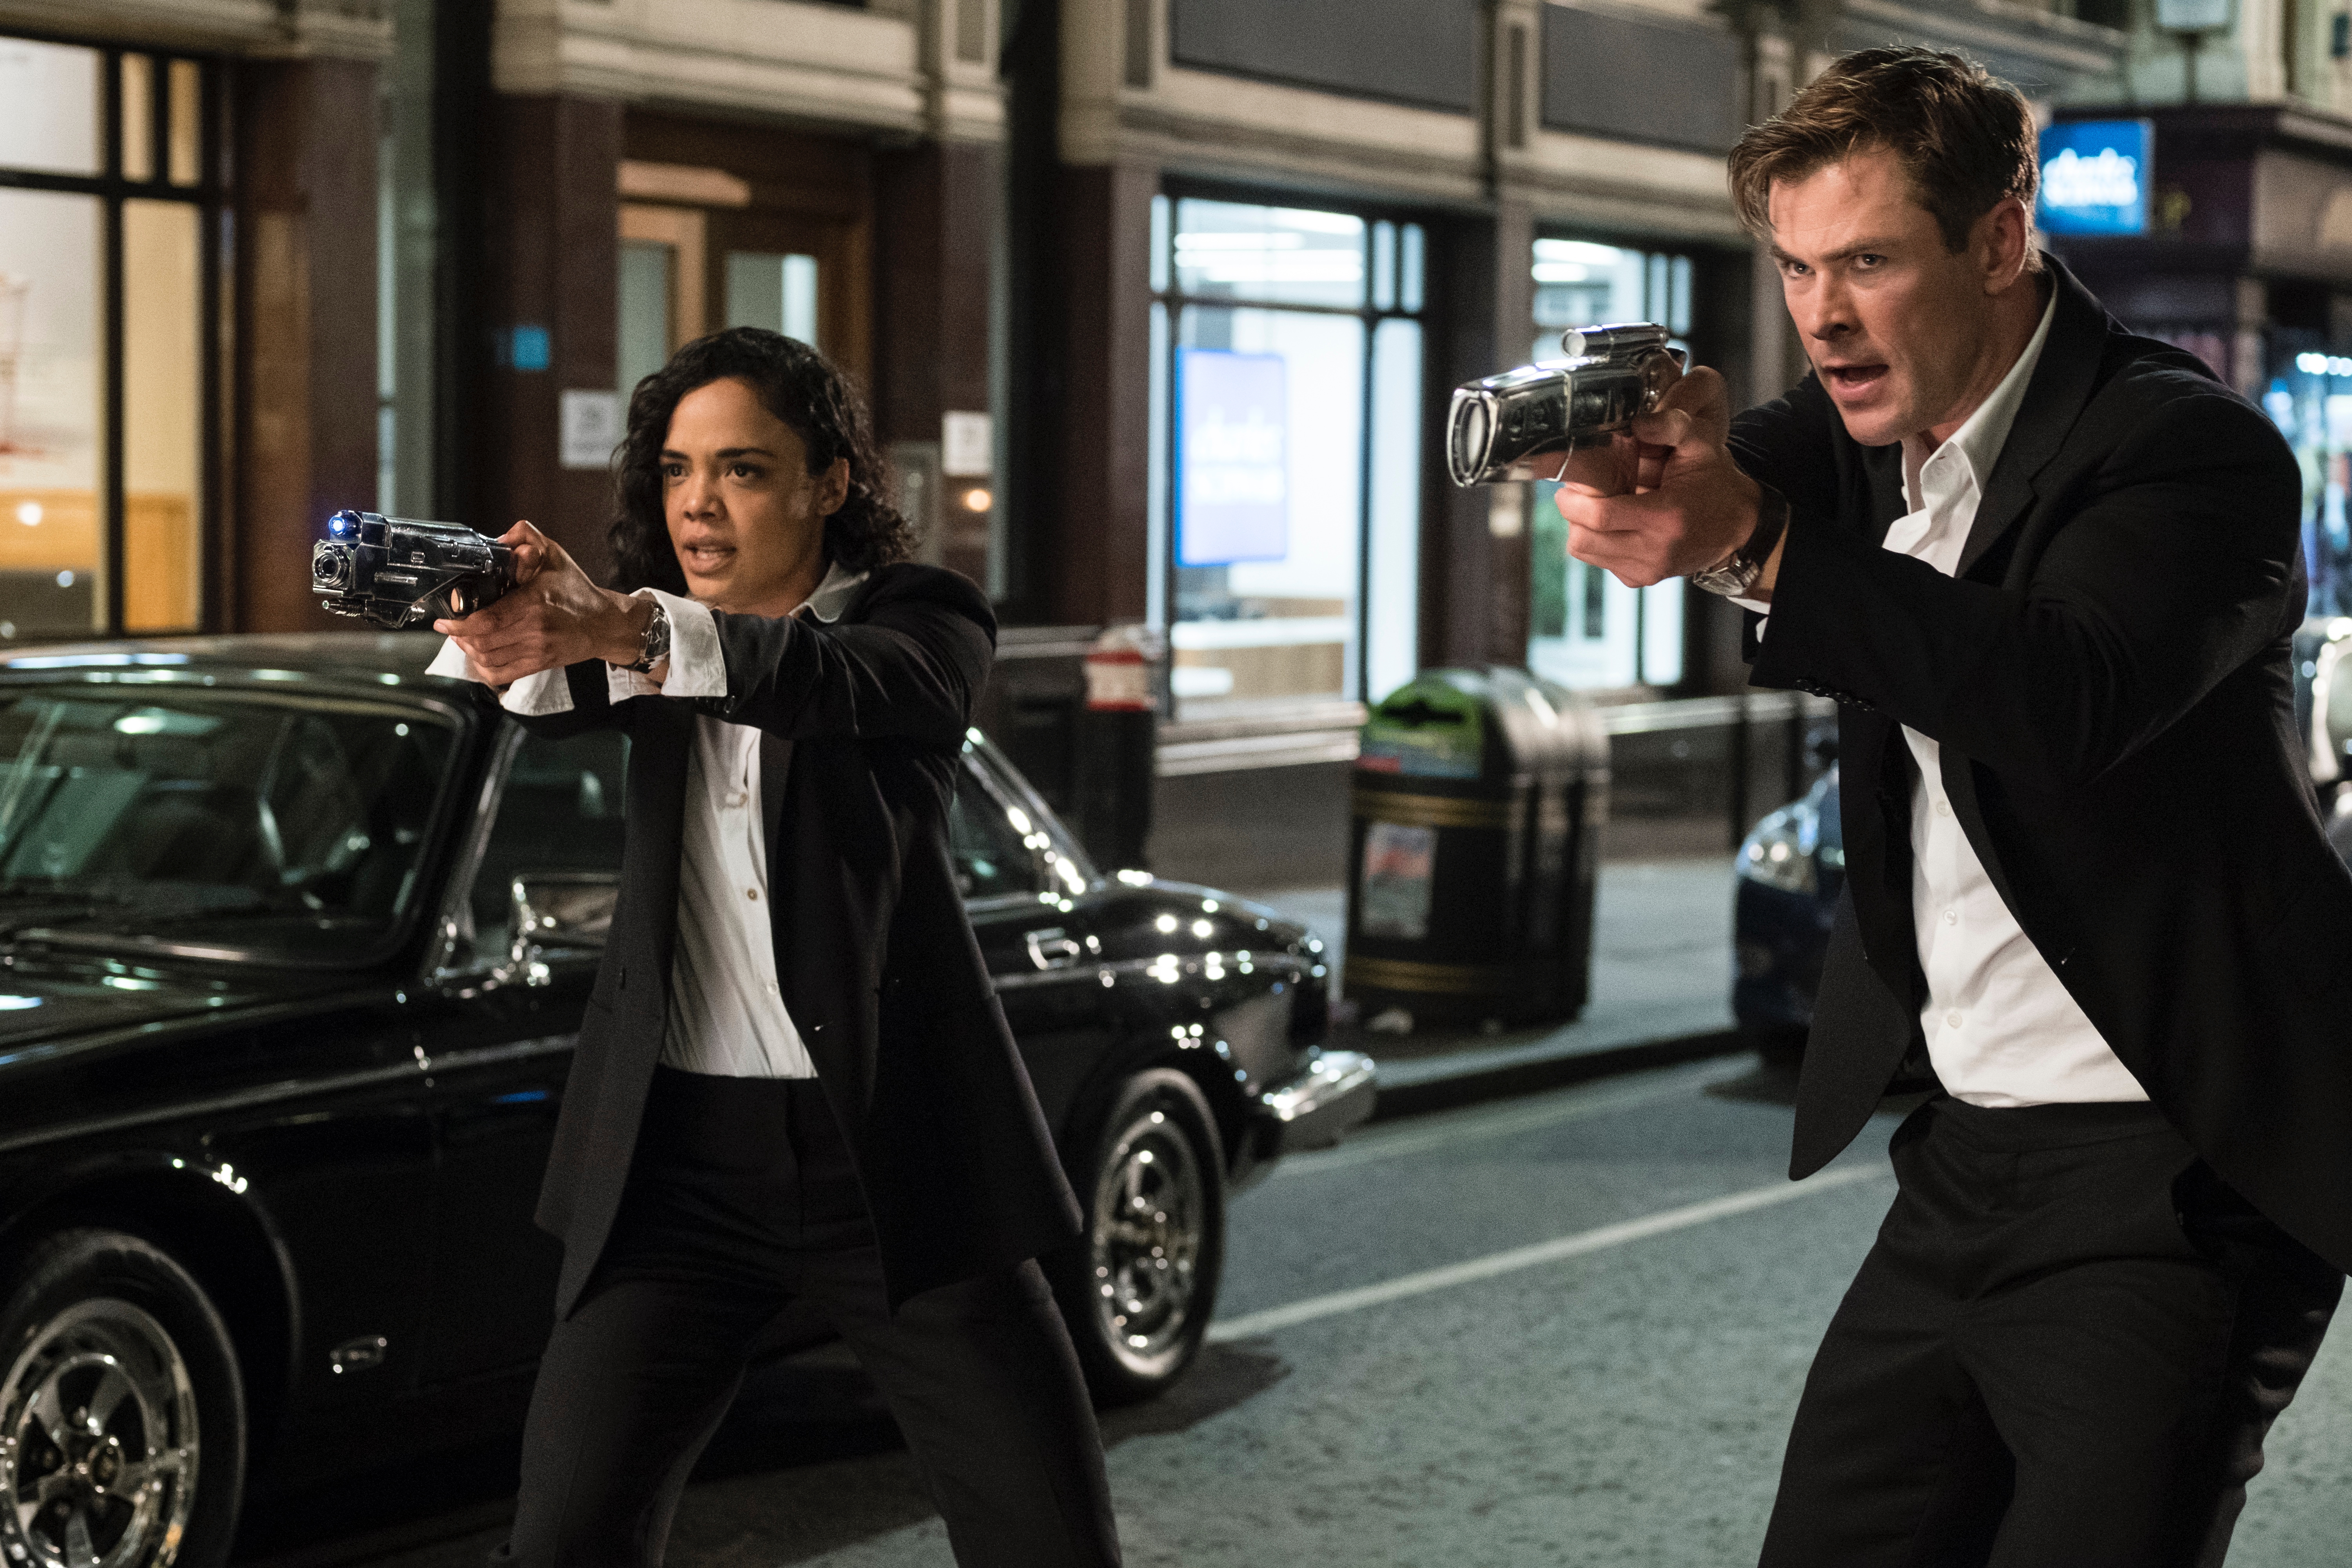 Tessa Thompson and Chris Hemsworth in Men in Black International. Paul Smith designed all the suits for the movie.